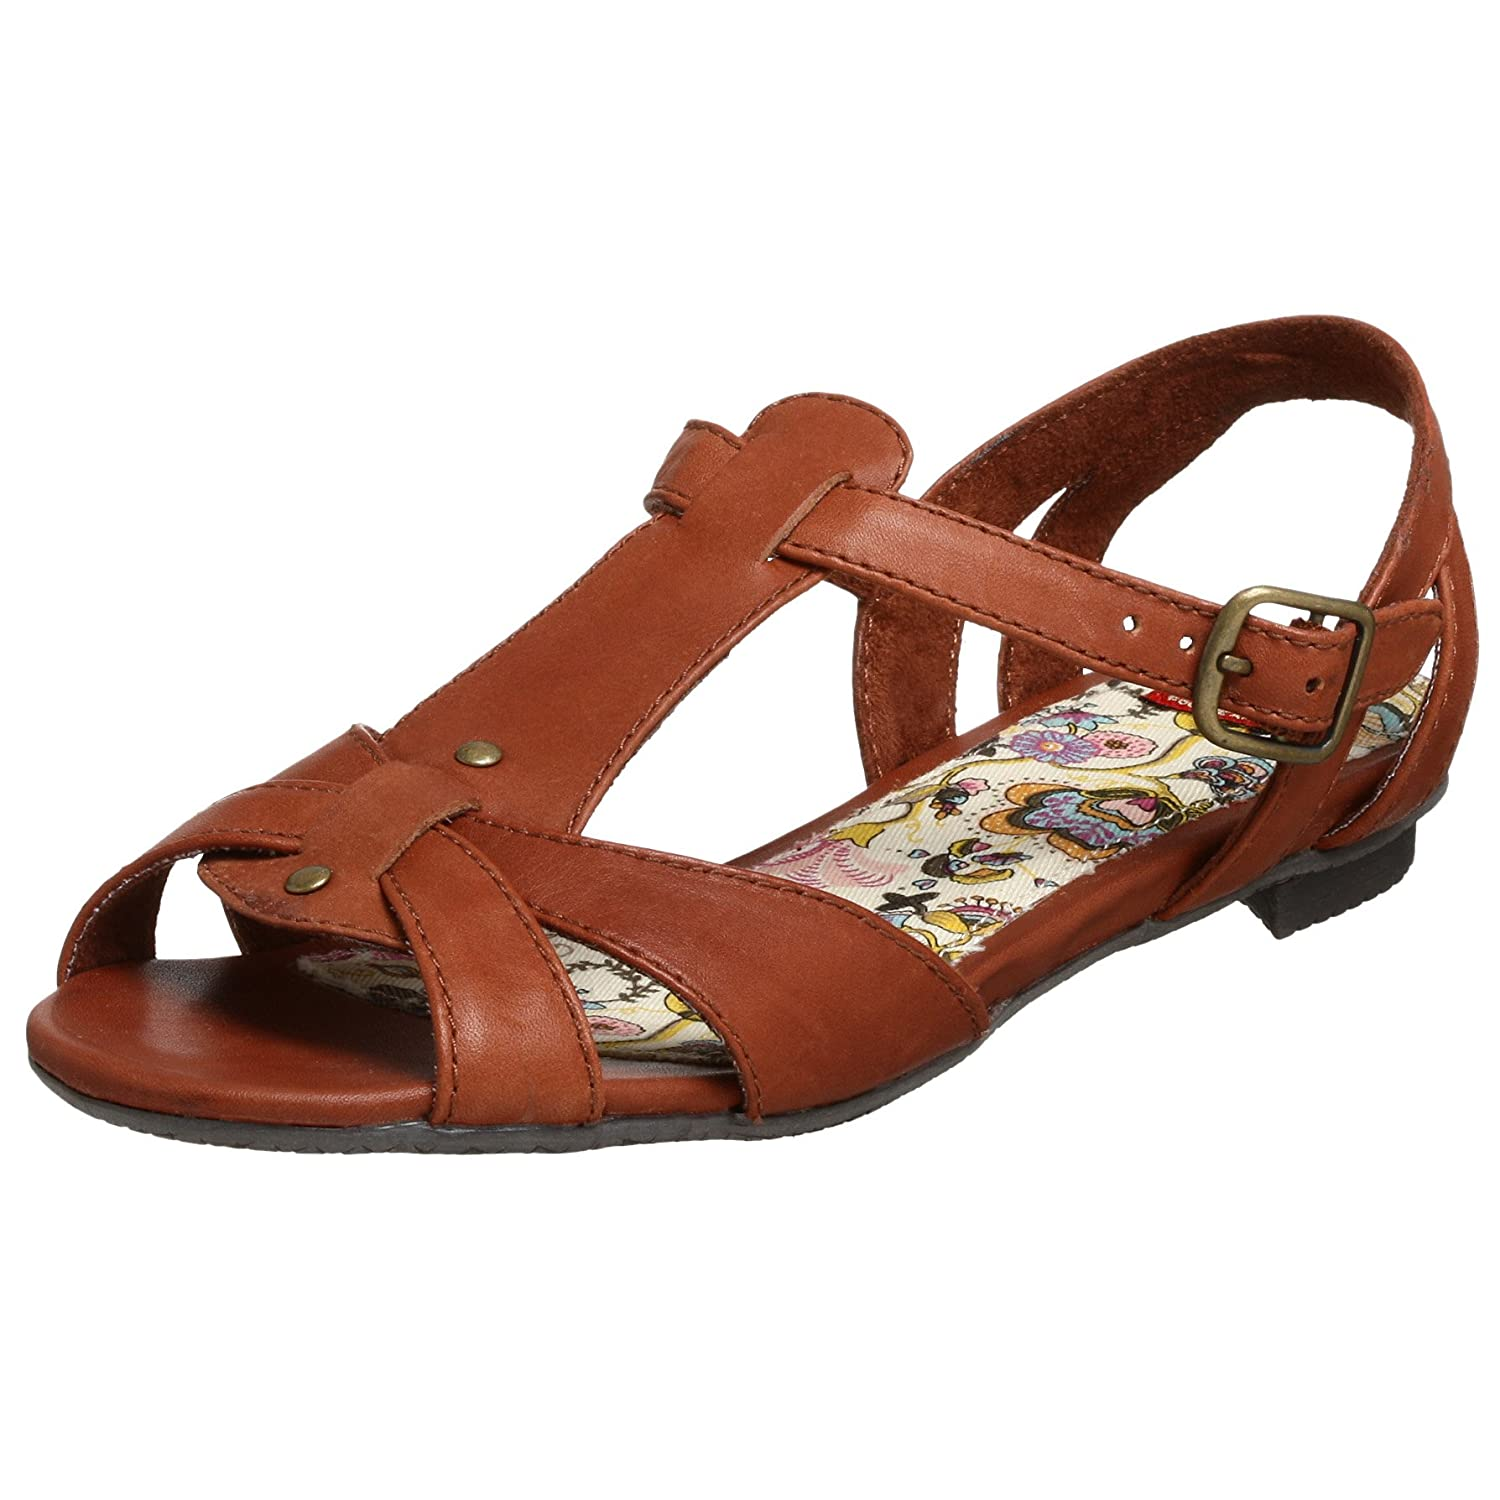 BC Footwear Women's Tsunami Sandal - Free Overnight Shipping & Return Shipping: Endless.com :  shoes bc footwear ankle strap studded